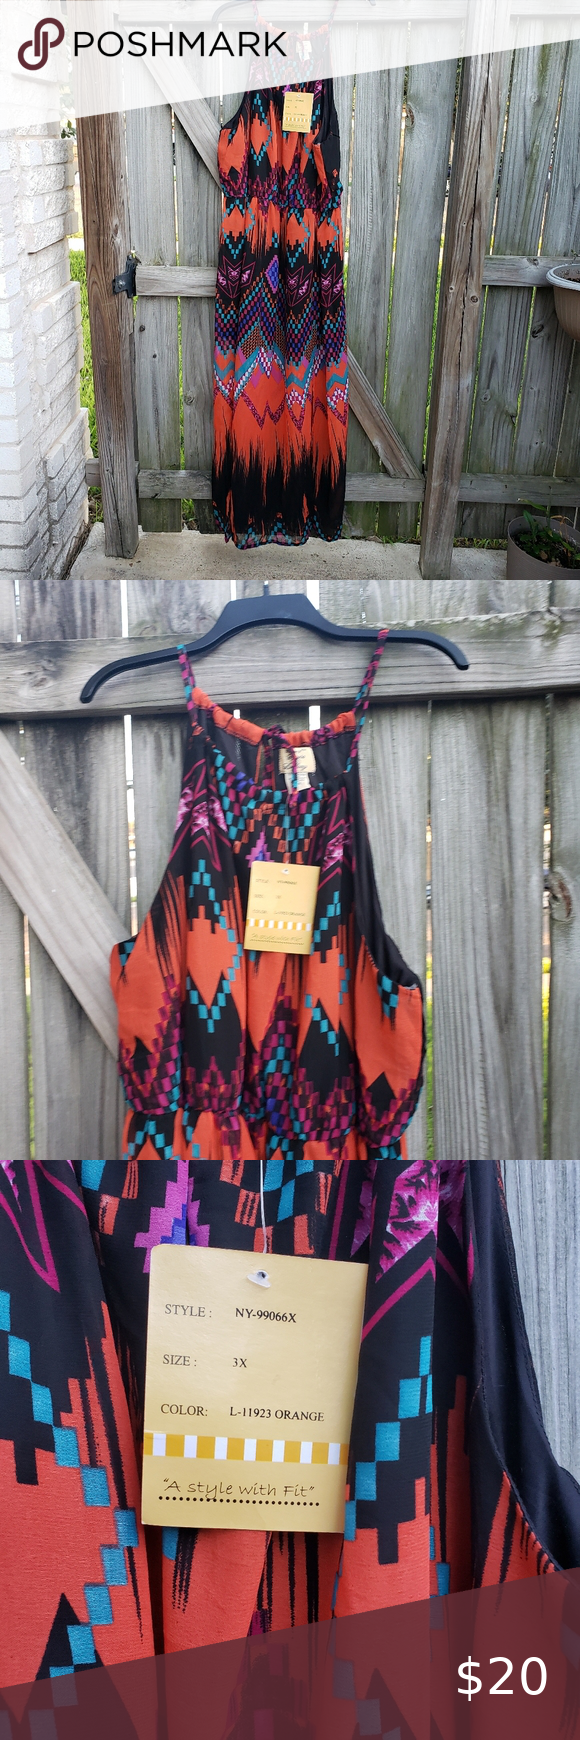 Nwt Very Pretty And Colorful Maxi Dress 3x Colorful Maxi Dress Colorful Maxi Pretty Maxi Dress [ 1740 x 580 Pixel ]